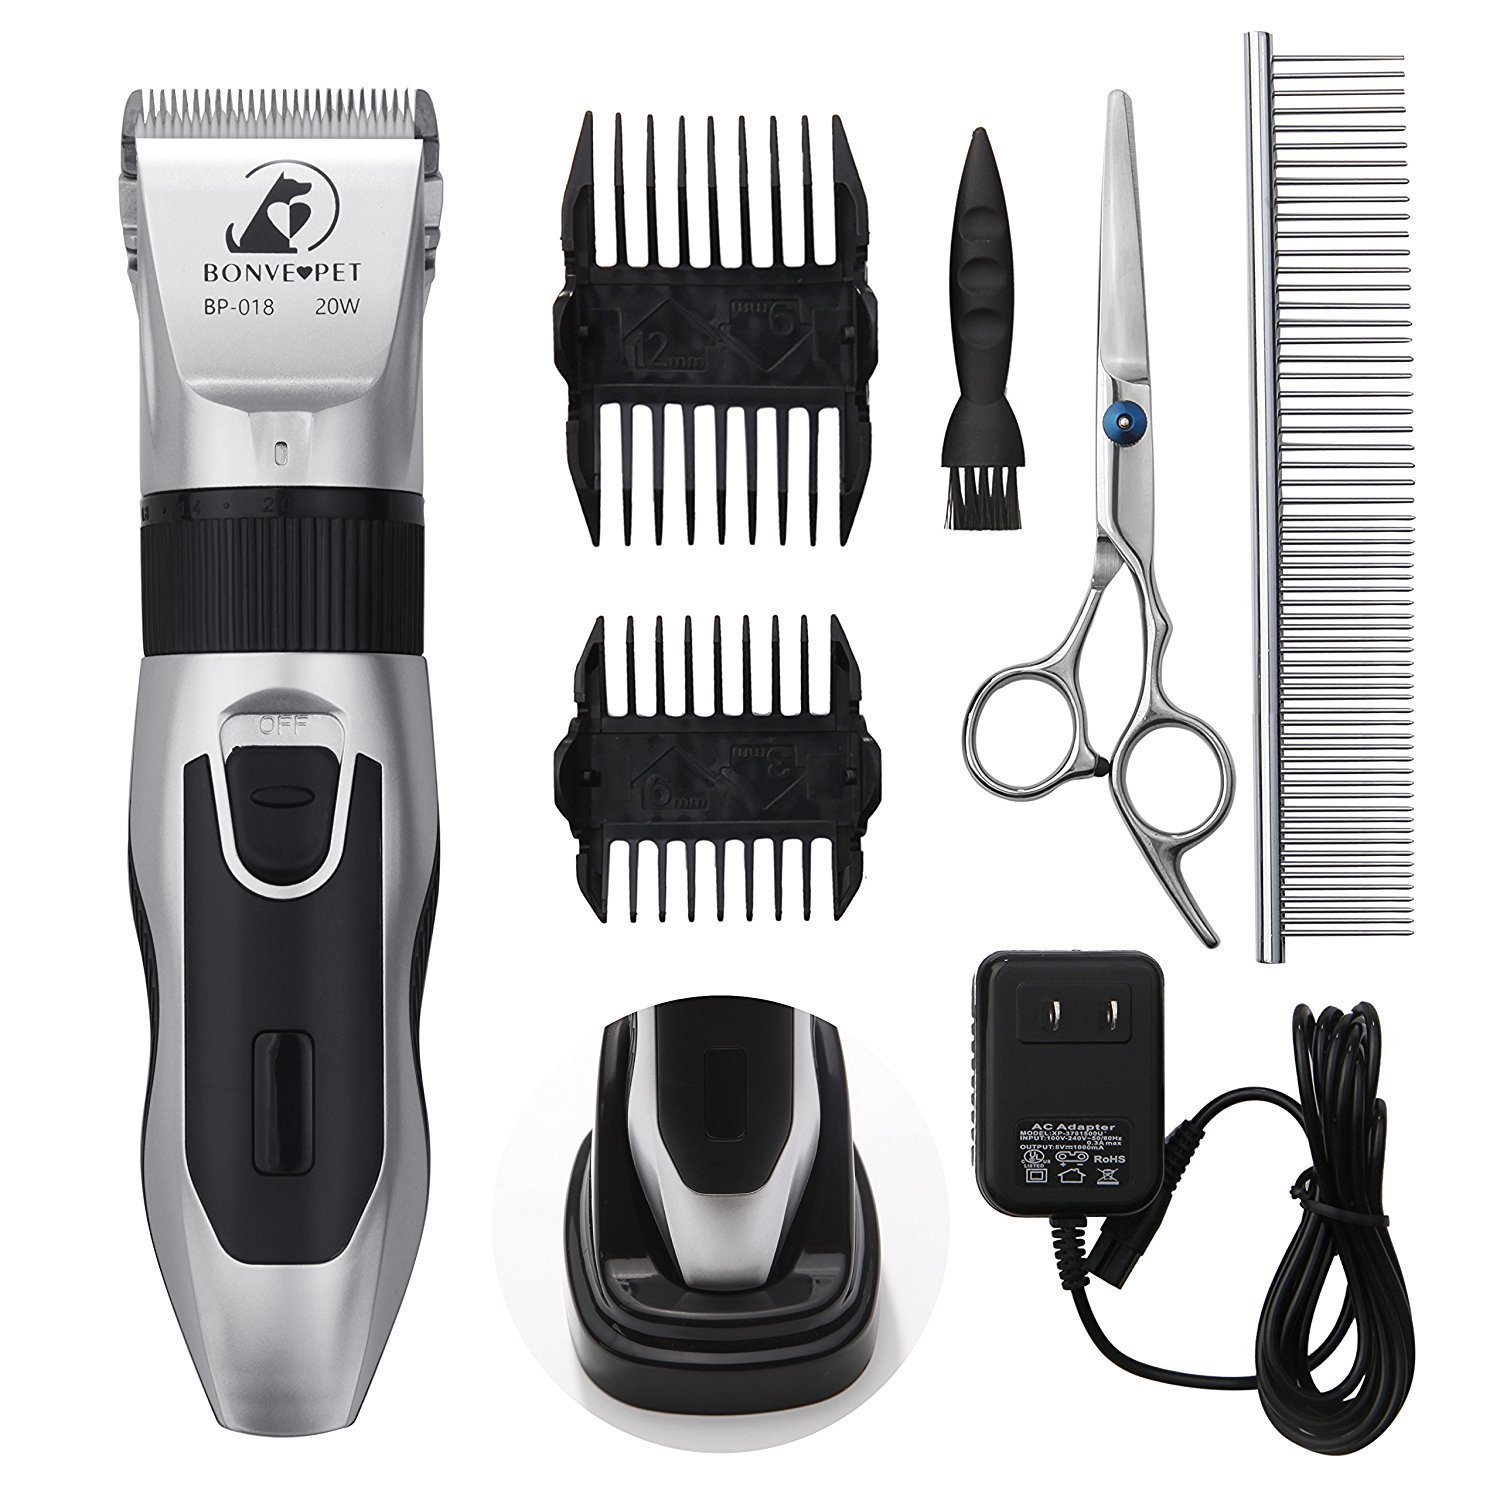 Dog Grooming Clippers - Cordless Quiet Pet Hair Clippers Trimmer Rechargeable with Stainless Steel Blades Dog Comb Shears Best Professional Hair Clipper Set for Dogs Cats Pets Long Short Hair